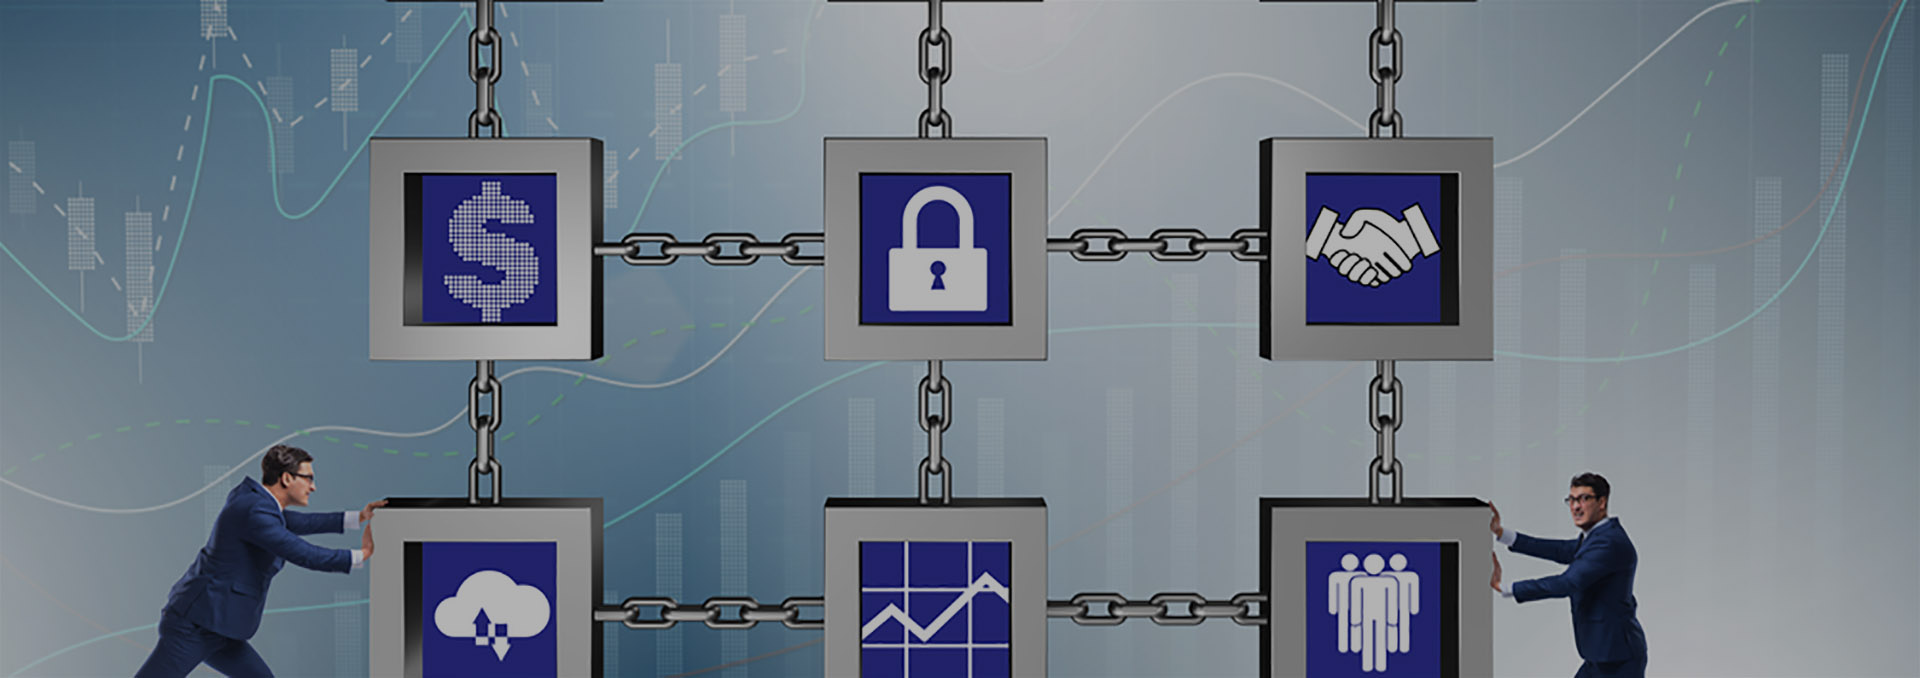 Security aspects are critical to the blockchain revolution